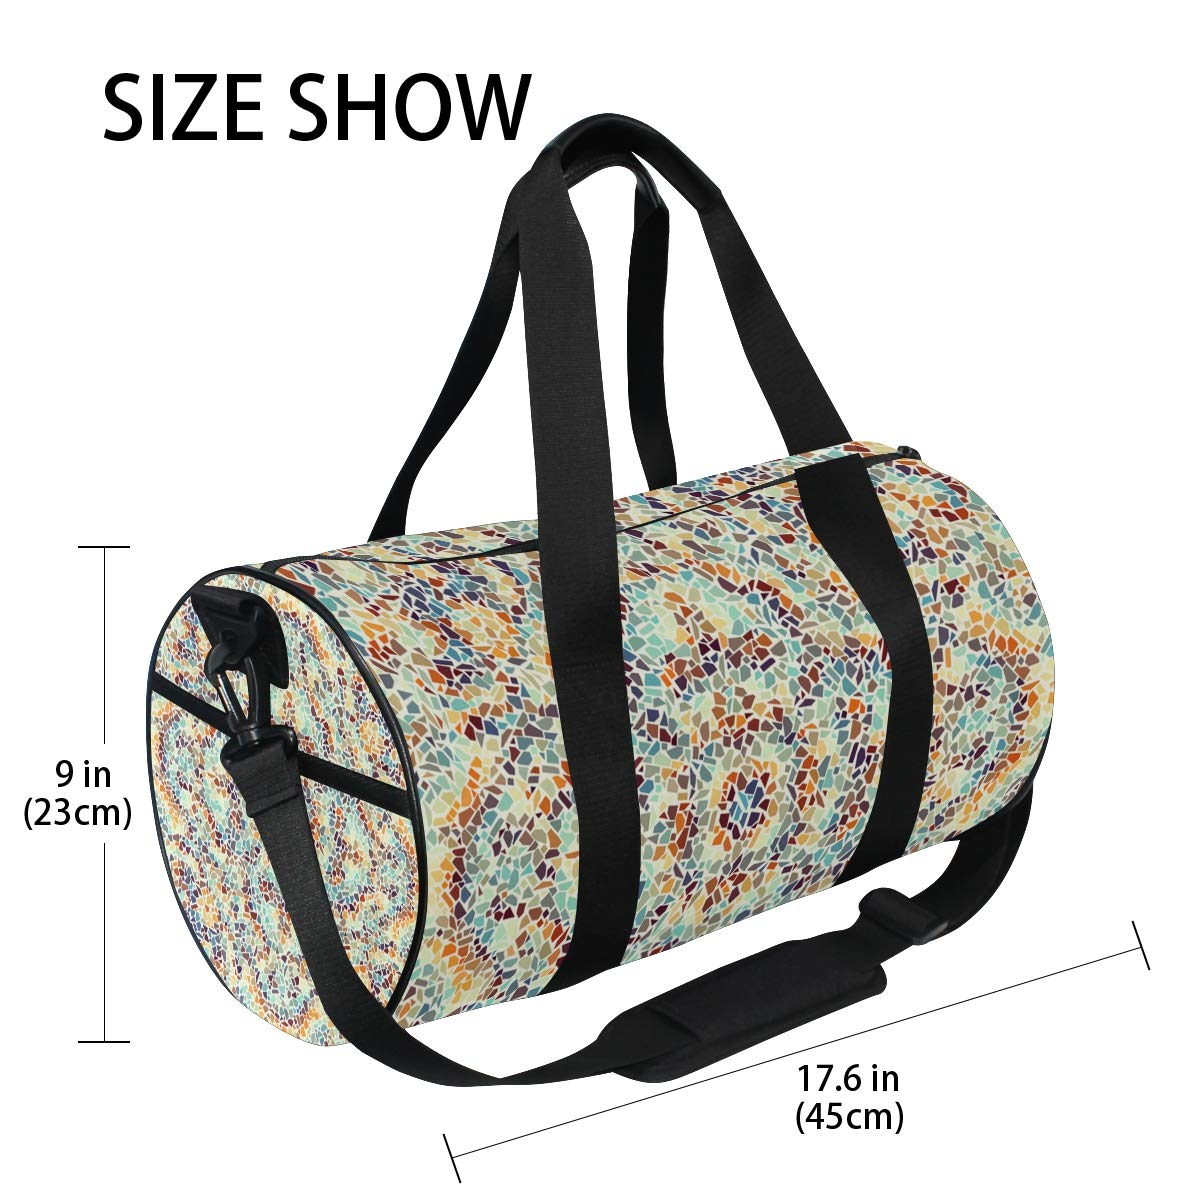 Psychedelic Classic Ceramic PictureWaterproof Non-Slip Wearable Crossbody Bag fitness bag Shoulder Bag